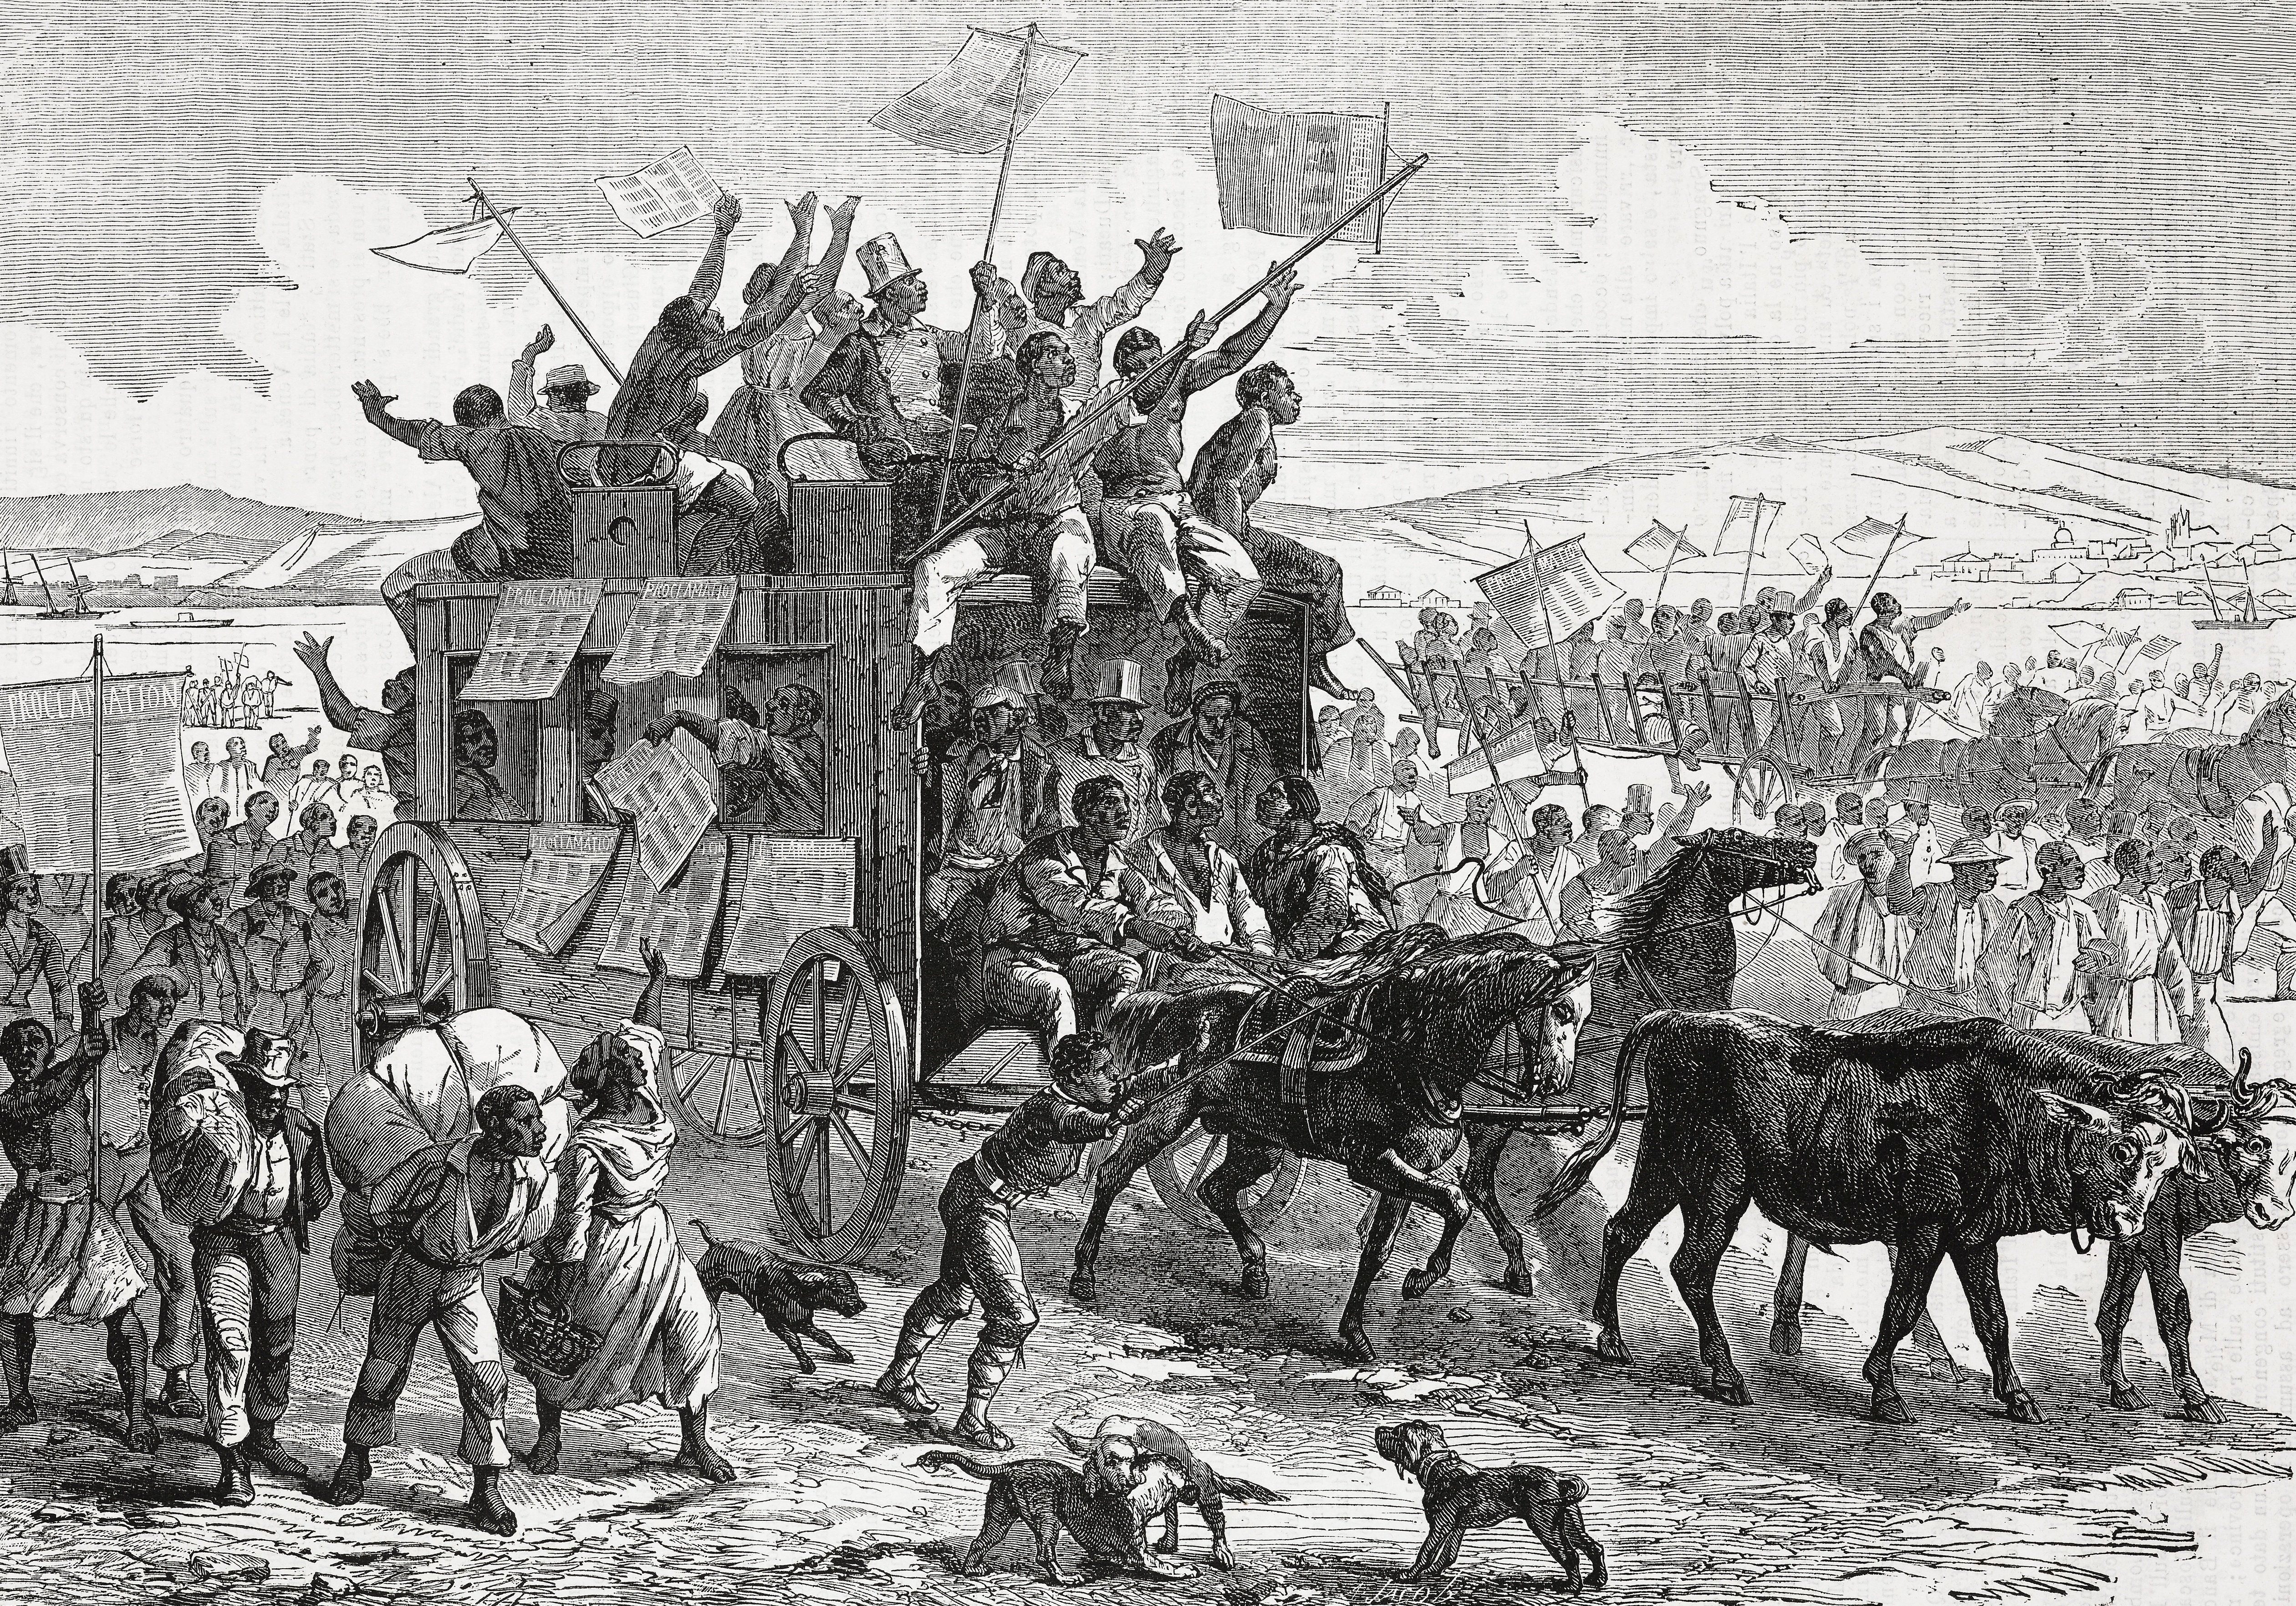 An 1865 illustration of freed African Americans traveling north waving copies of the Emancipation Proclamation.